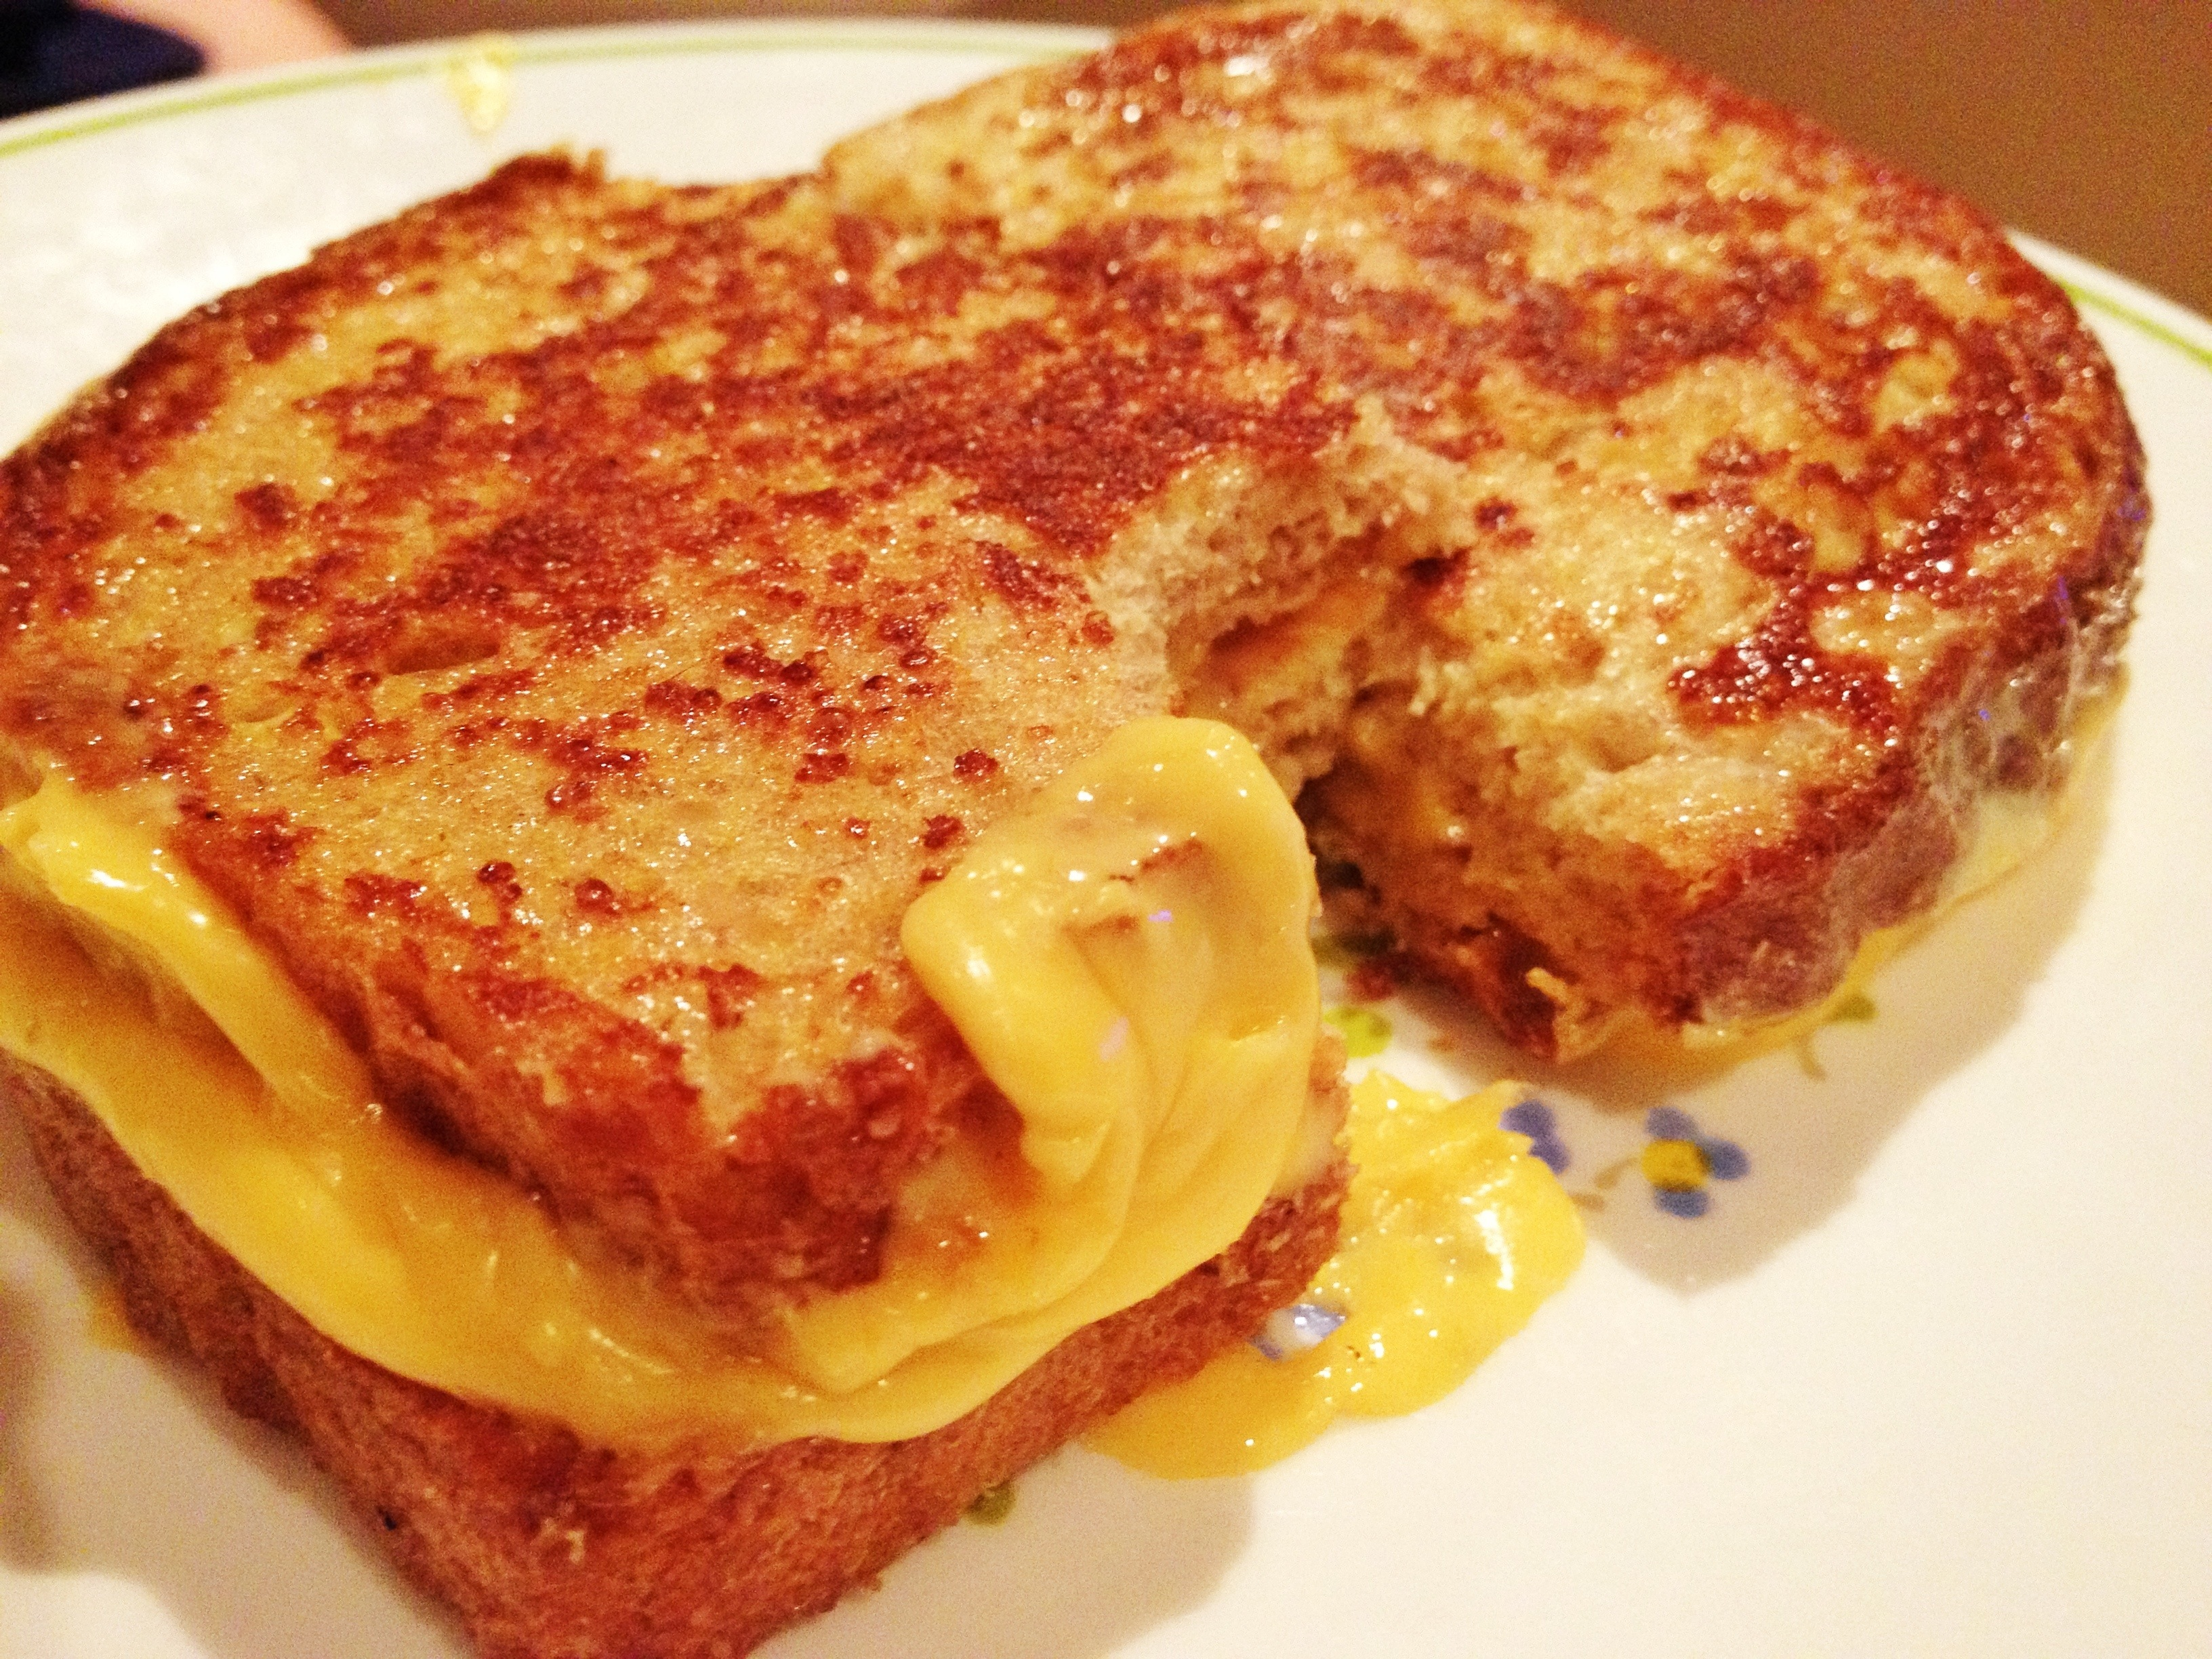 ... September 4, 2012 at 3264 × 2448 in French toast grilled cheese